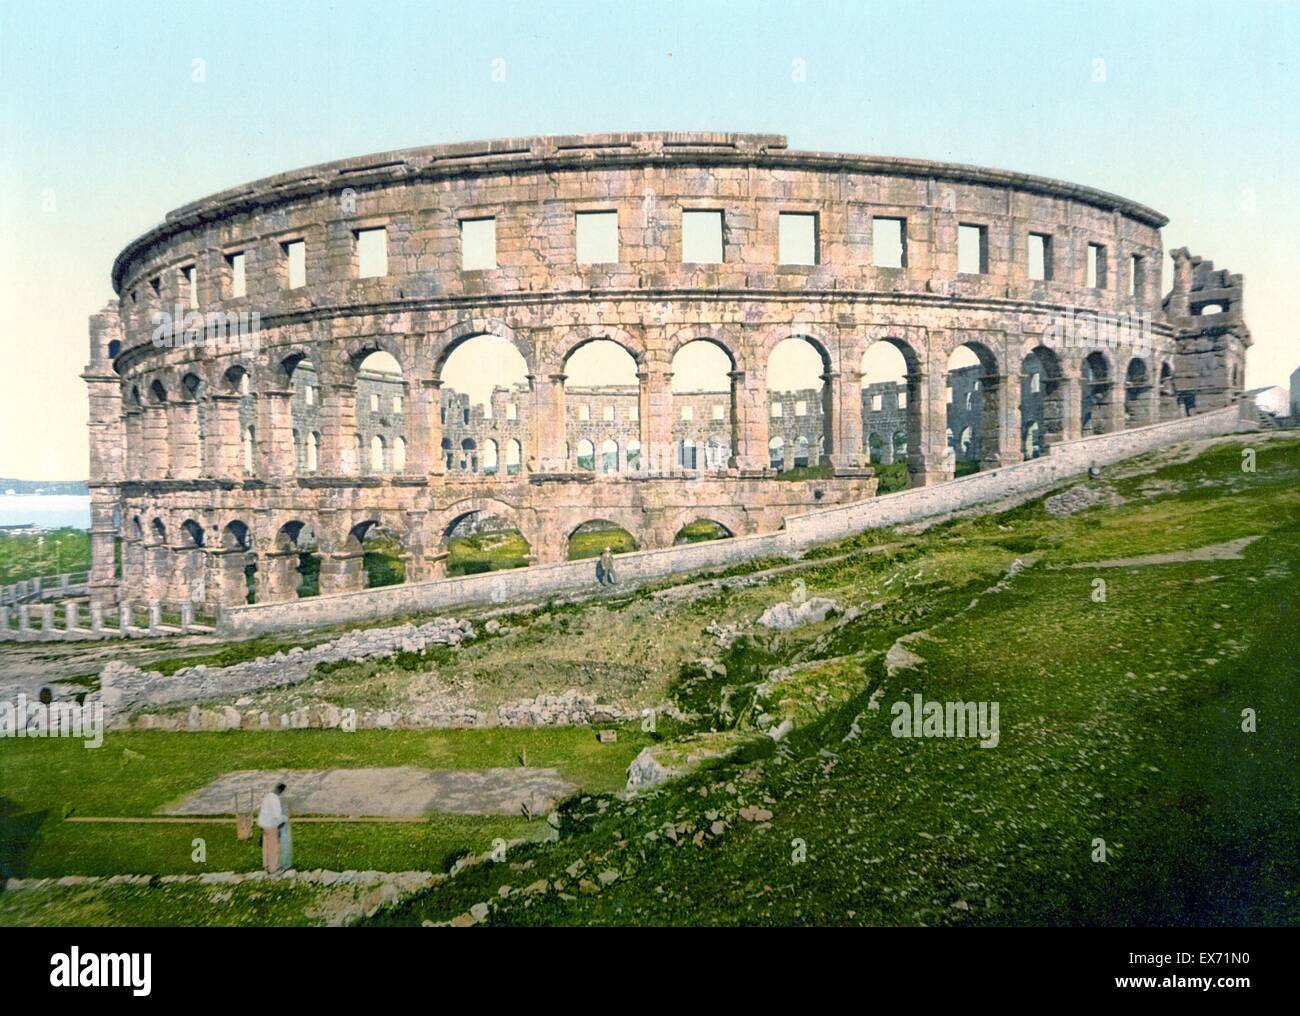 Pula, the Roman arena, Istria, Austro-Hungary in 1900 The Pula Arena is the name of the amphitheatre located in - Stock Image